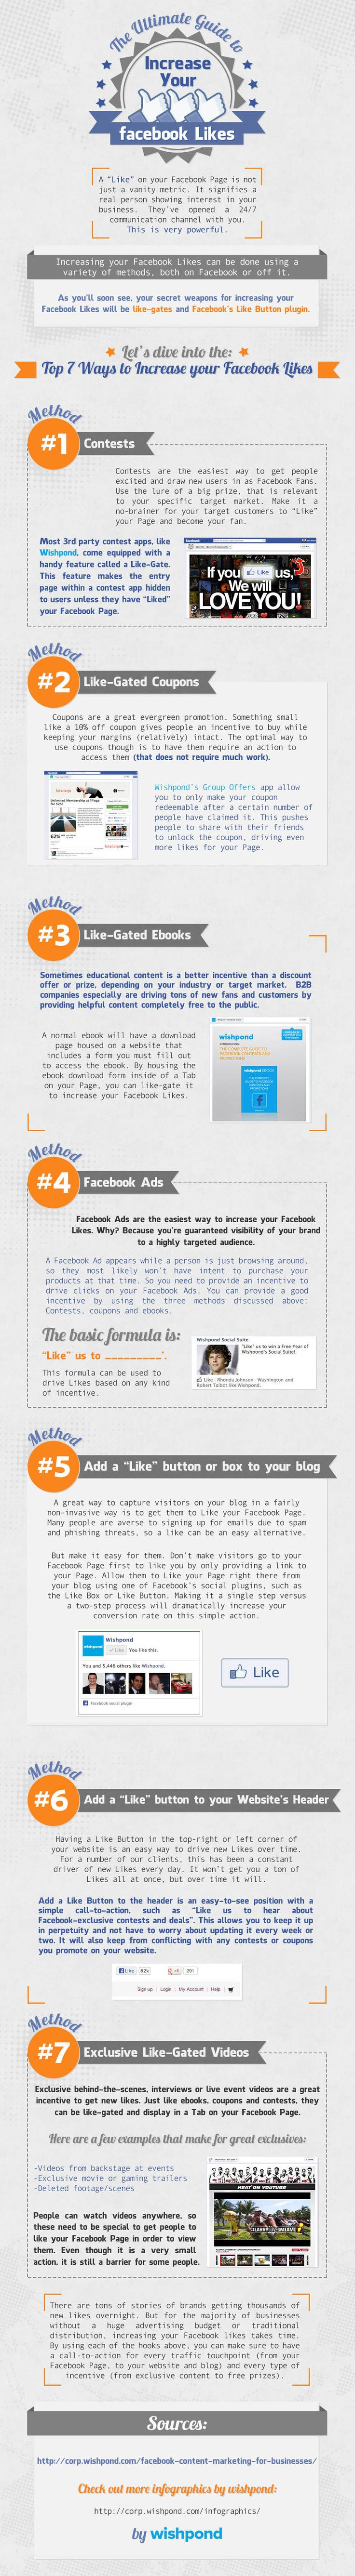 7 super easy ways to increase your #Facebook likes - #socialmedia #infographic